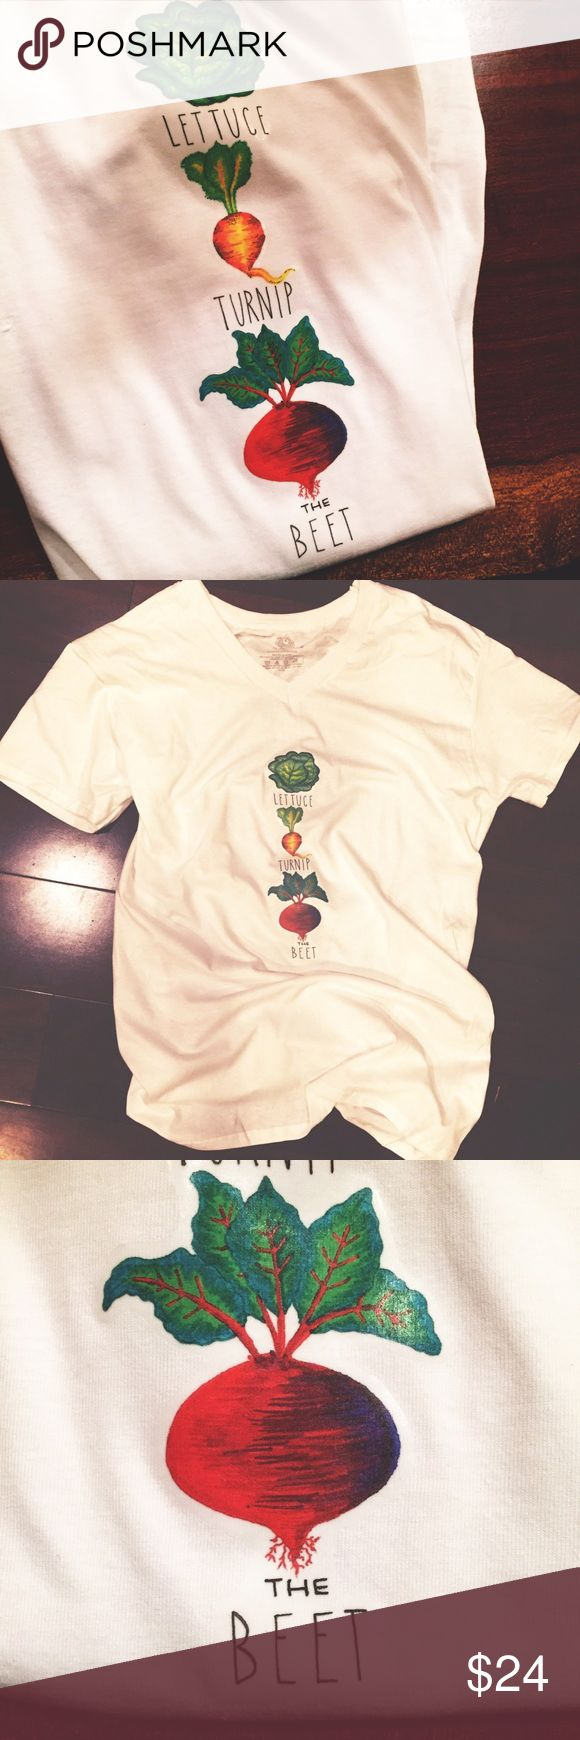 Limited Edition | Lettuce Turnip The Beet Shirt Unique veggie tee for lovers of musical vegetable puns! Hand drawn (by this kid) garden veggies that have been heat transferred upon a brand spankin new Fruit of the Loom men's tee (new, but came without tags). Let us turn up the beat!  (To wash: turn inside out, wash in cold water without bleach, and lay flat to dry.) Tops Tees - Short Sleeve